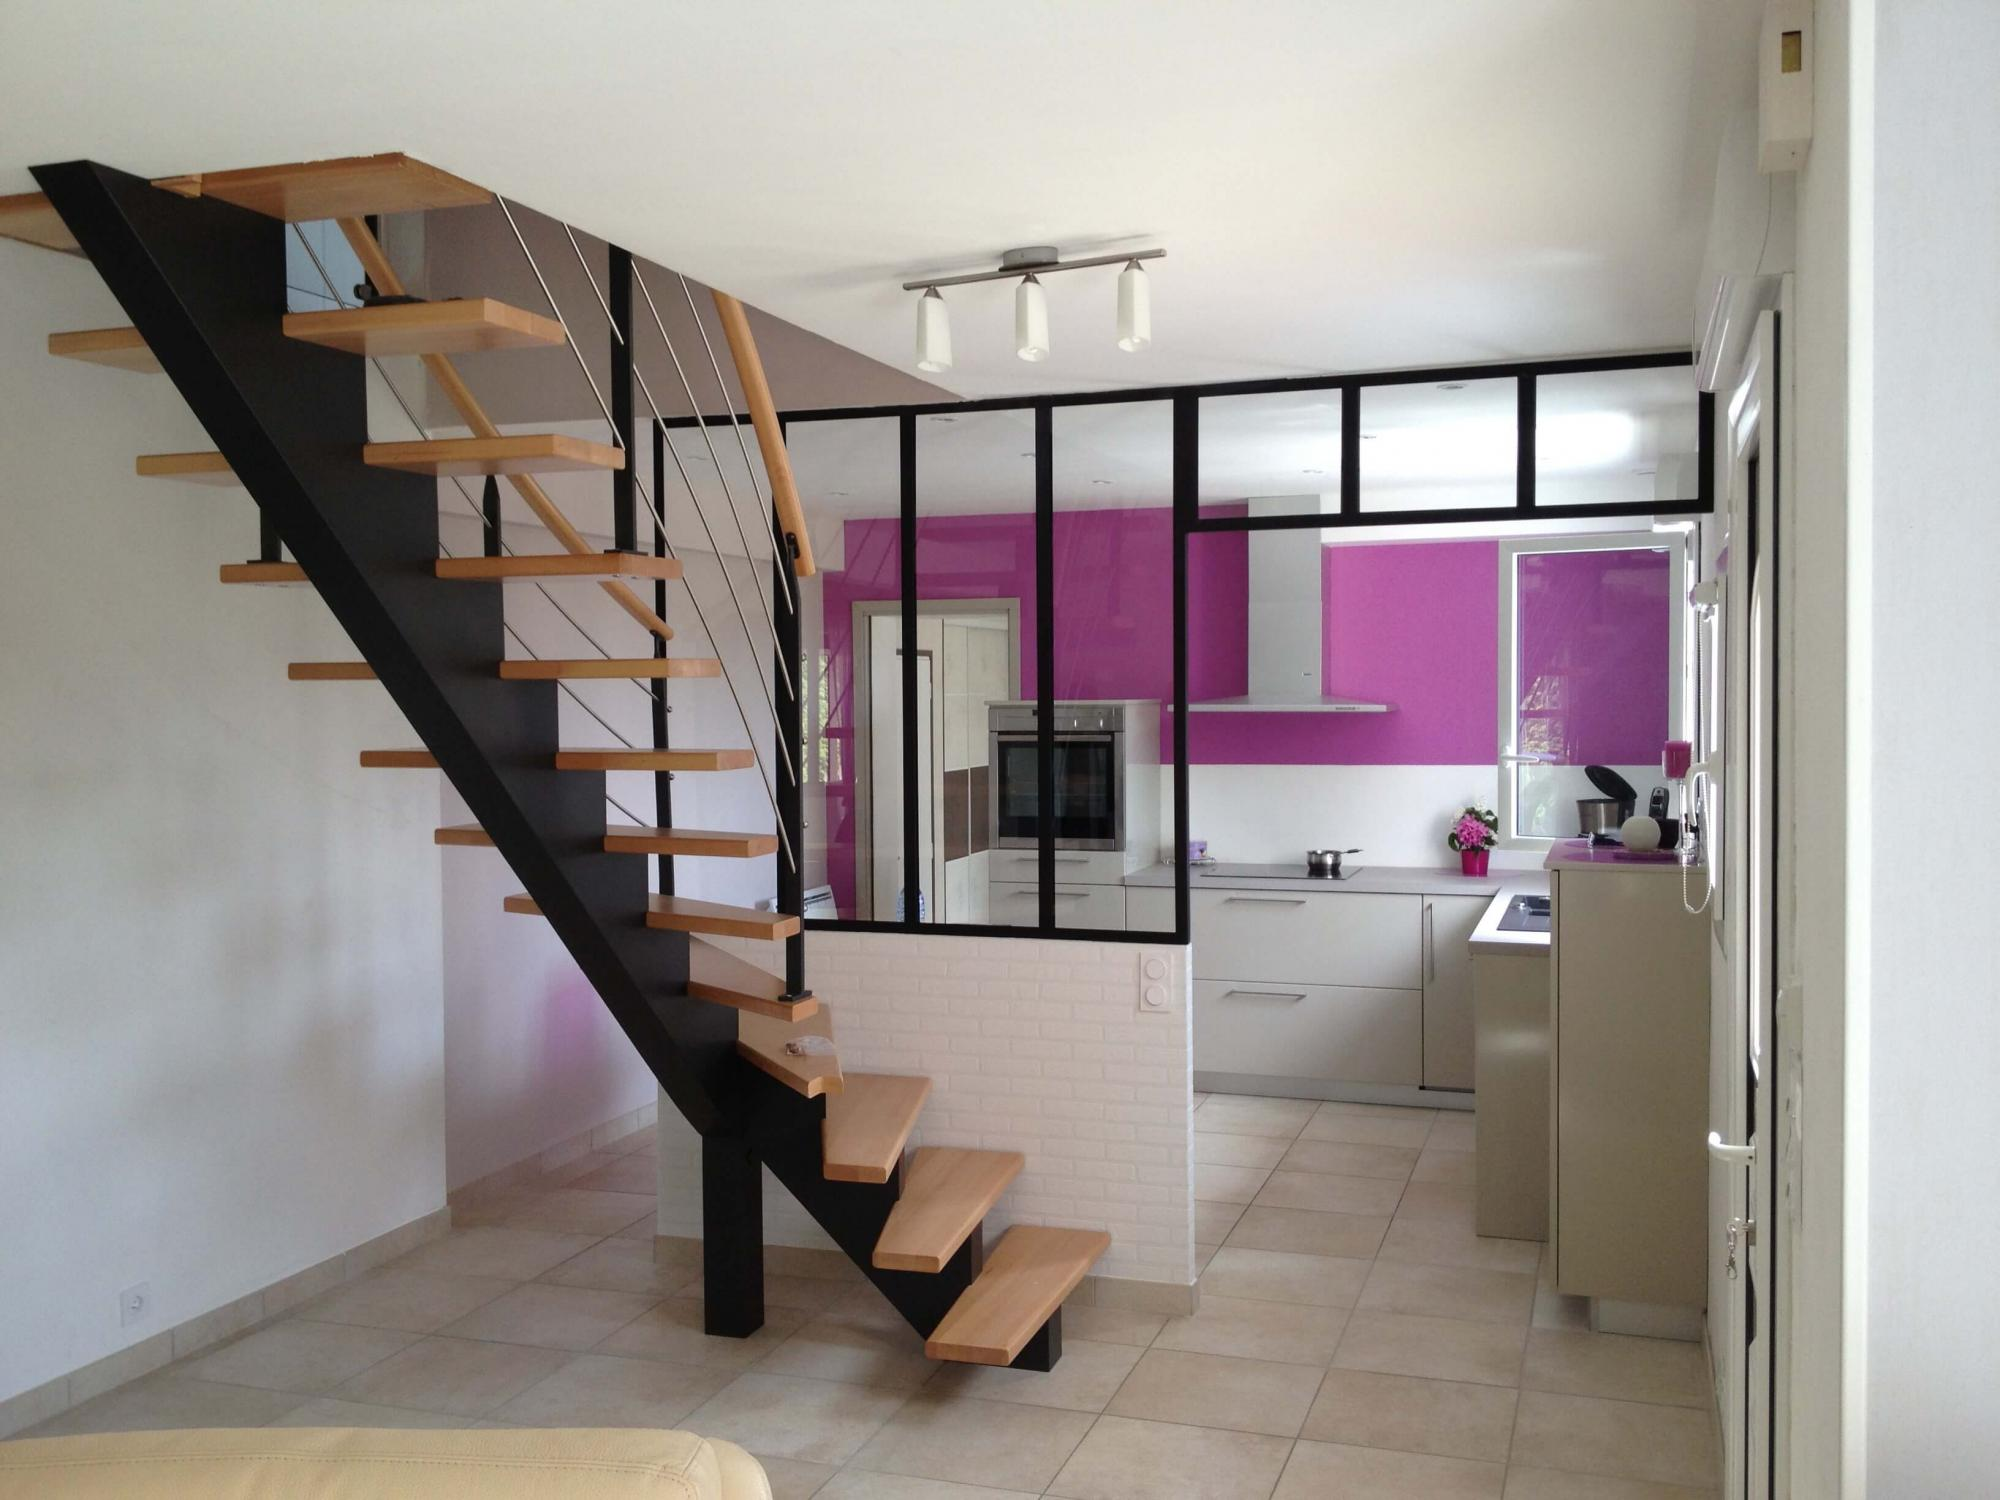 Agencement int rieur de votre maison par la menuiserie for Amenagement interieur maison